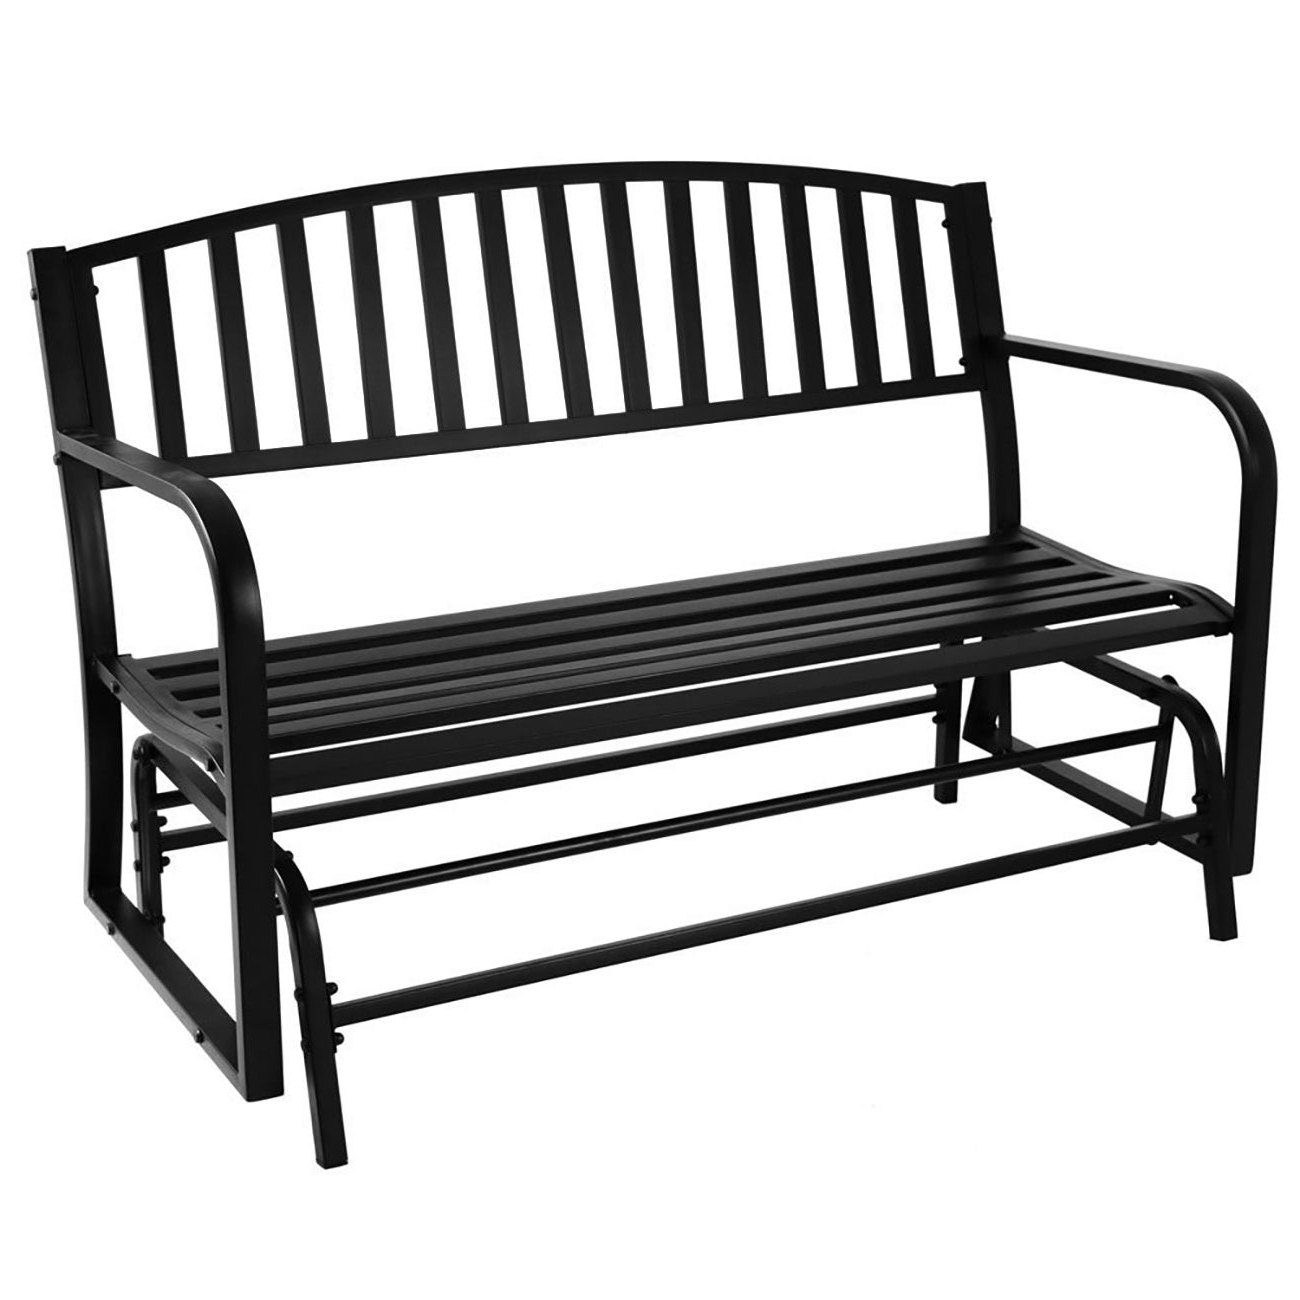 2 Person Black Wood Outdoor Swings Within Favorite Outsunny 50 L Steel Garden Bench Outdoor Patio 2 Person Park (Gallery 13 of 25)